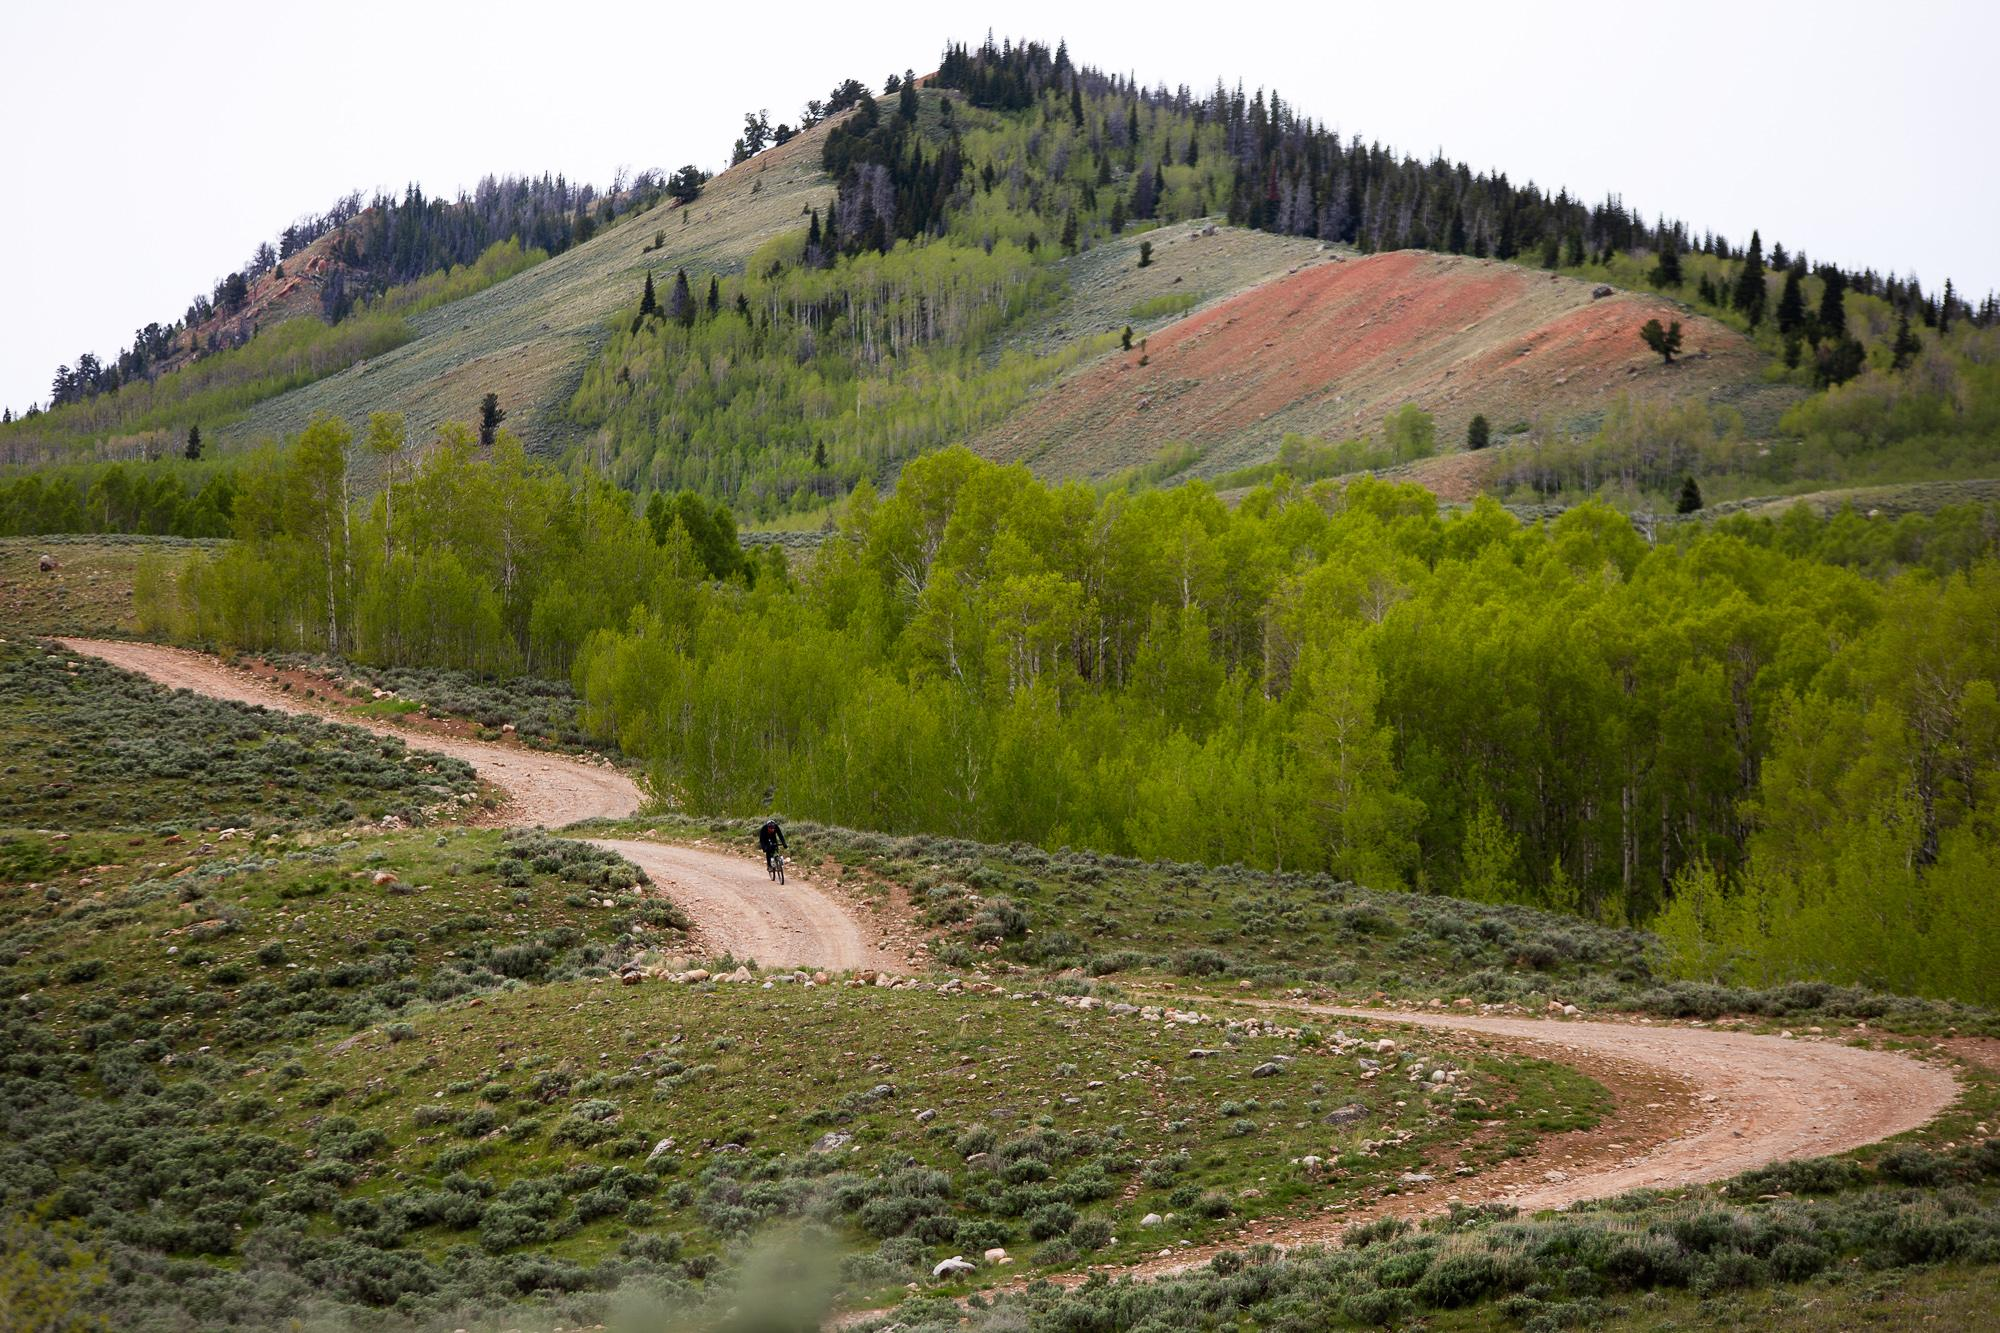 Josh Ibbett rides towards Pinedale, Wyoming. (Rugile Kaladyte)